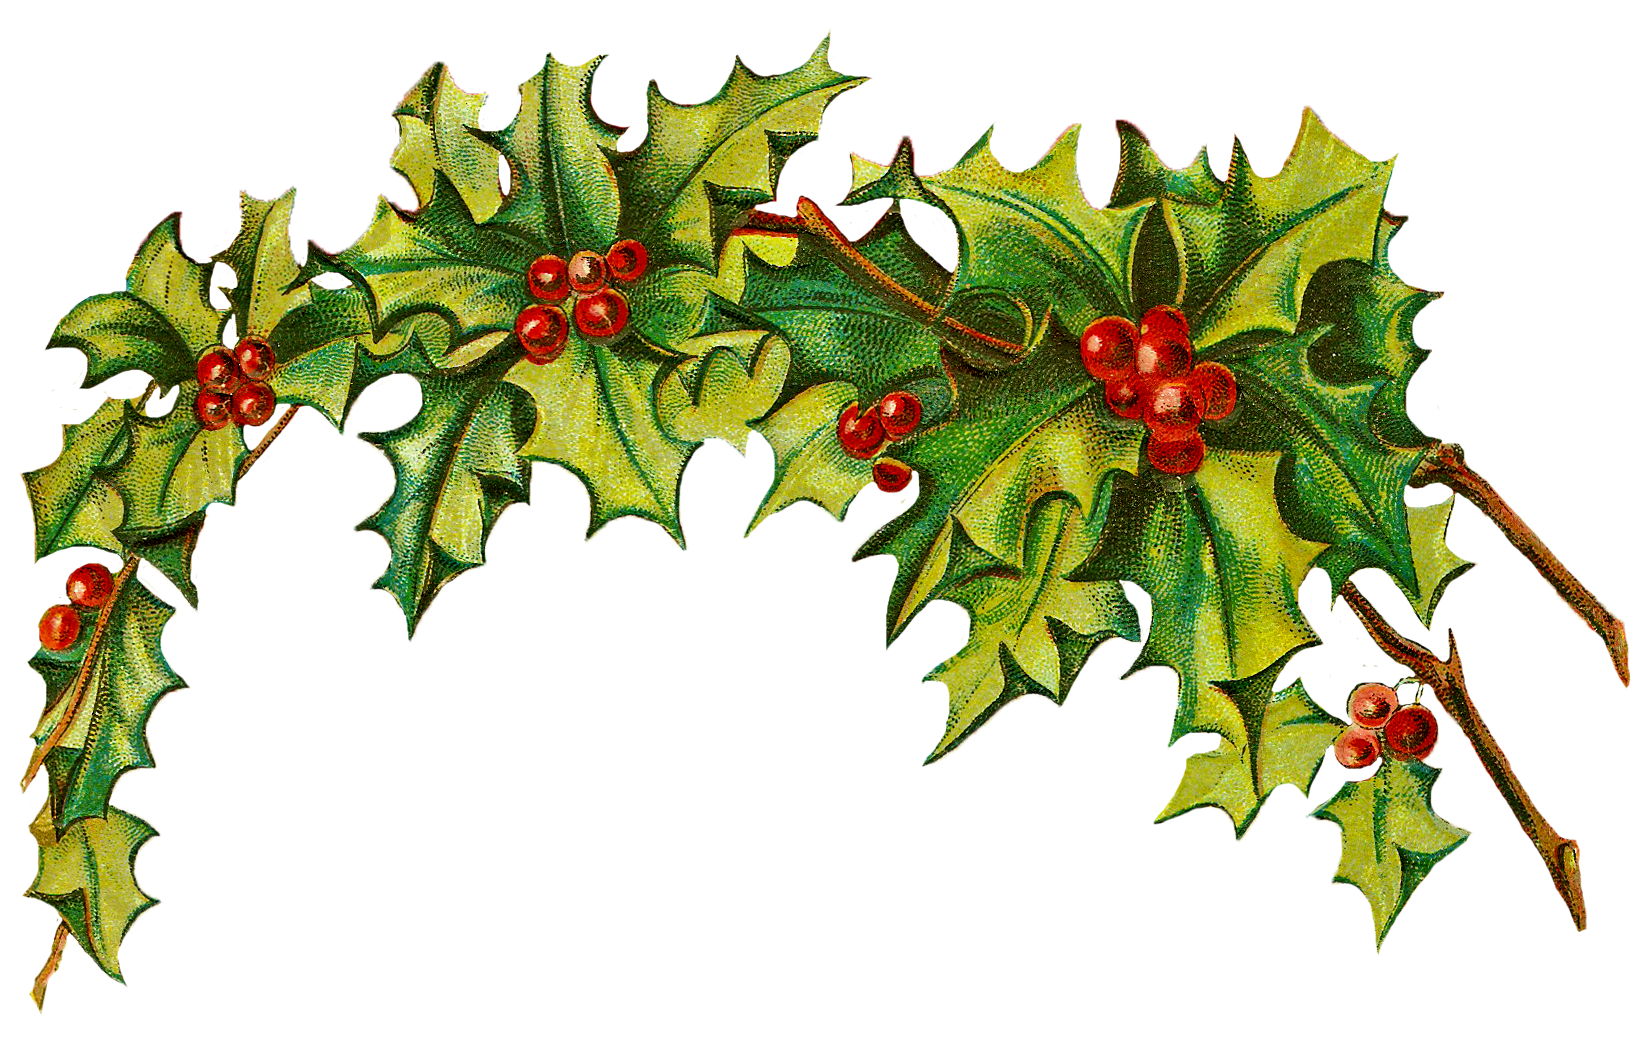 Vintage christmas images use. Ivy clipart bough